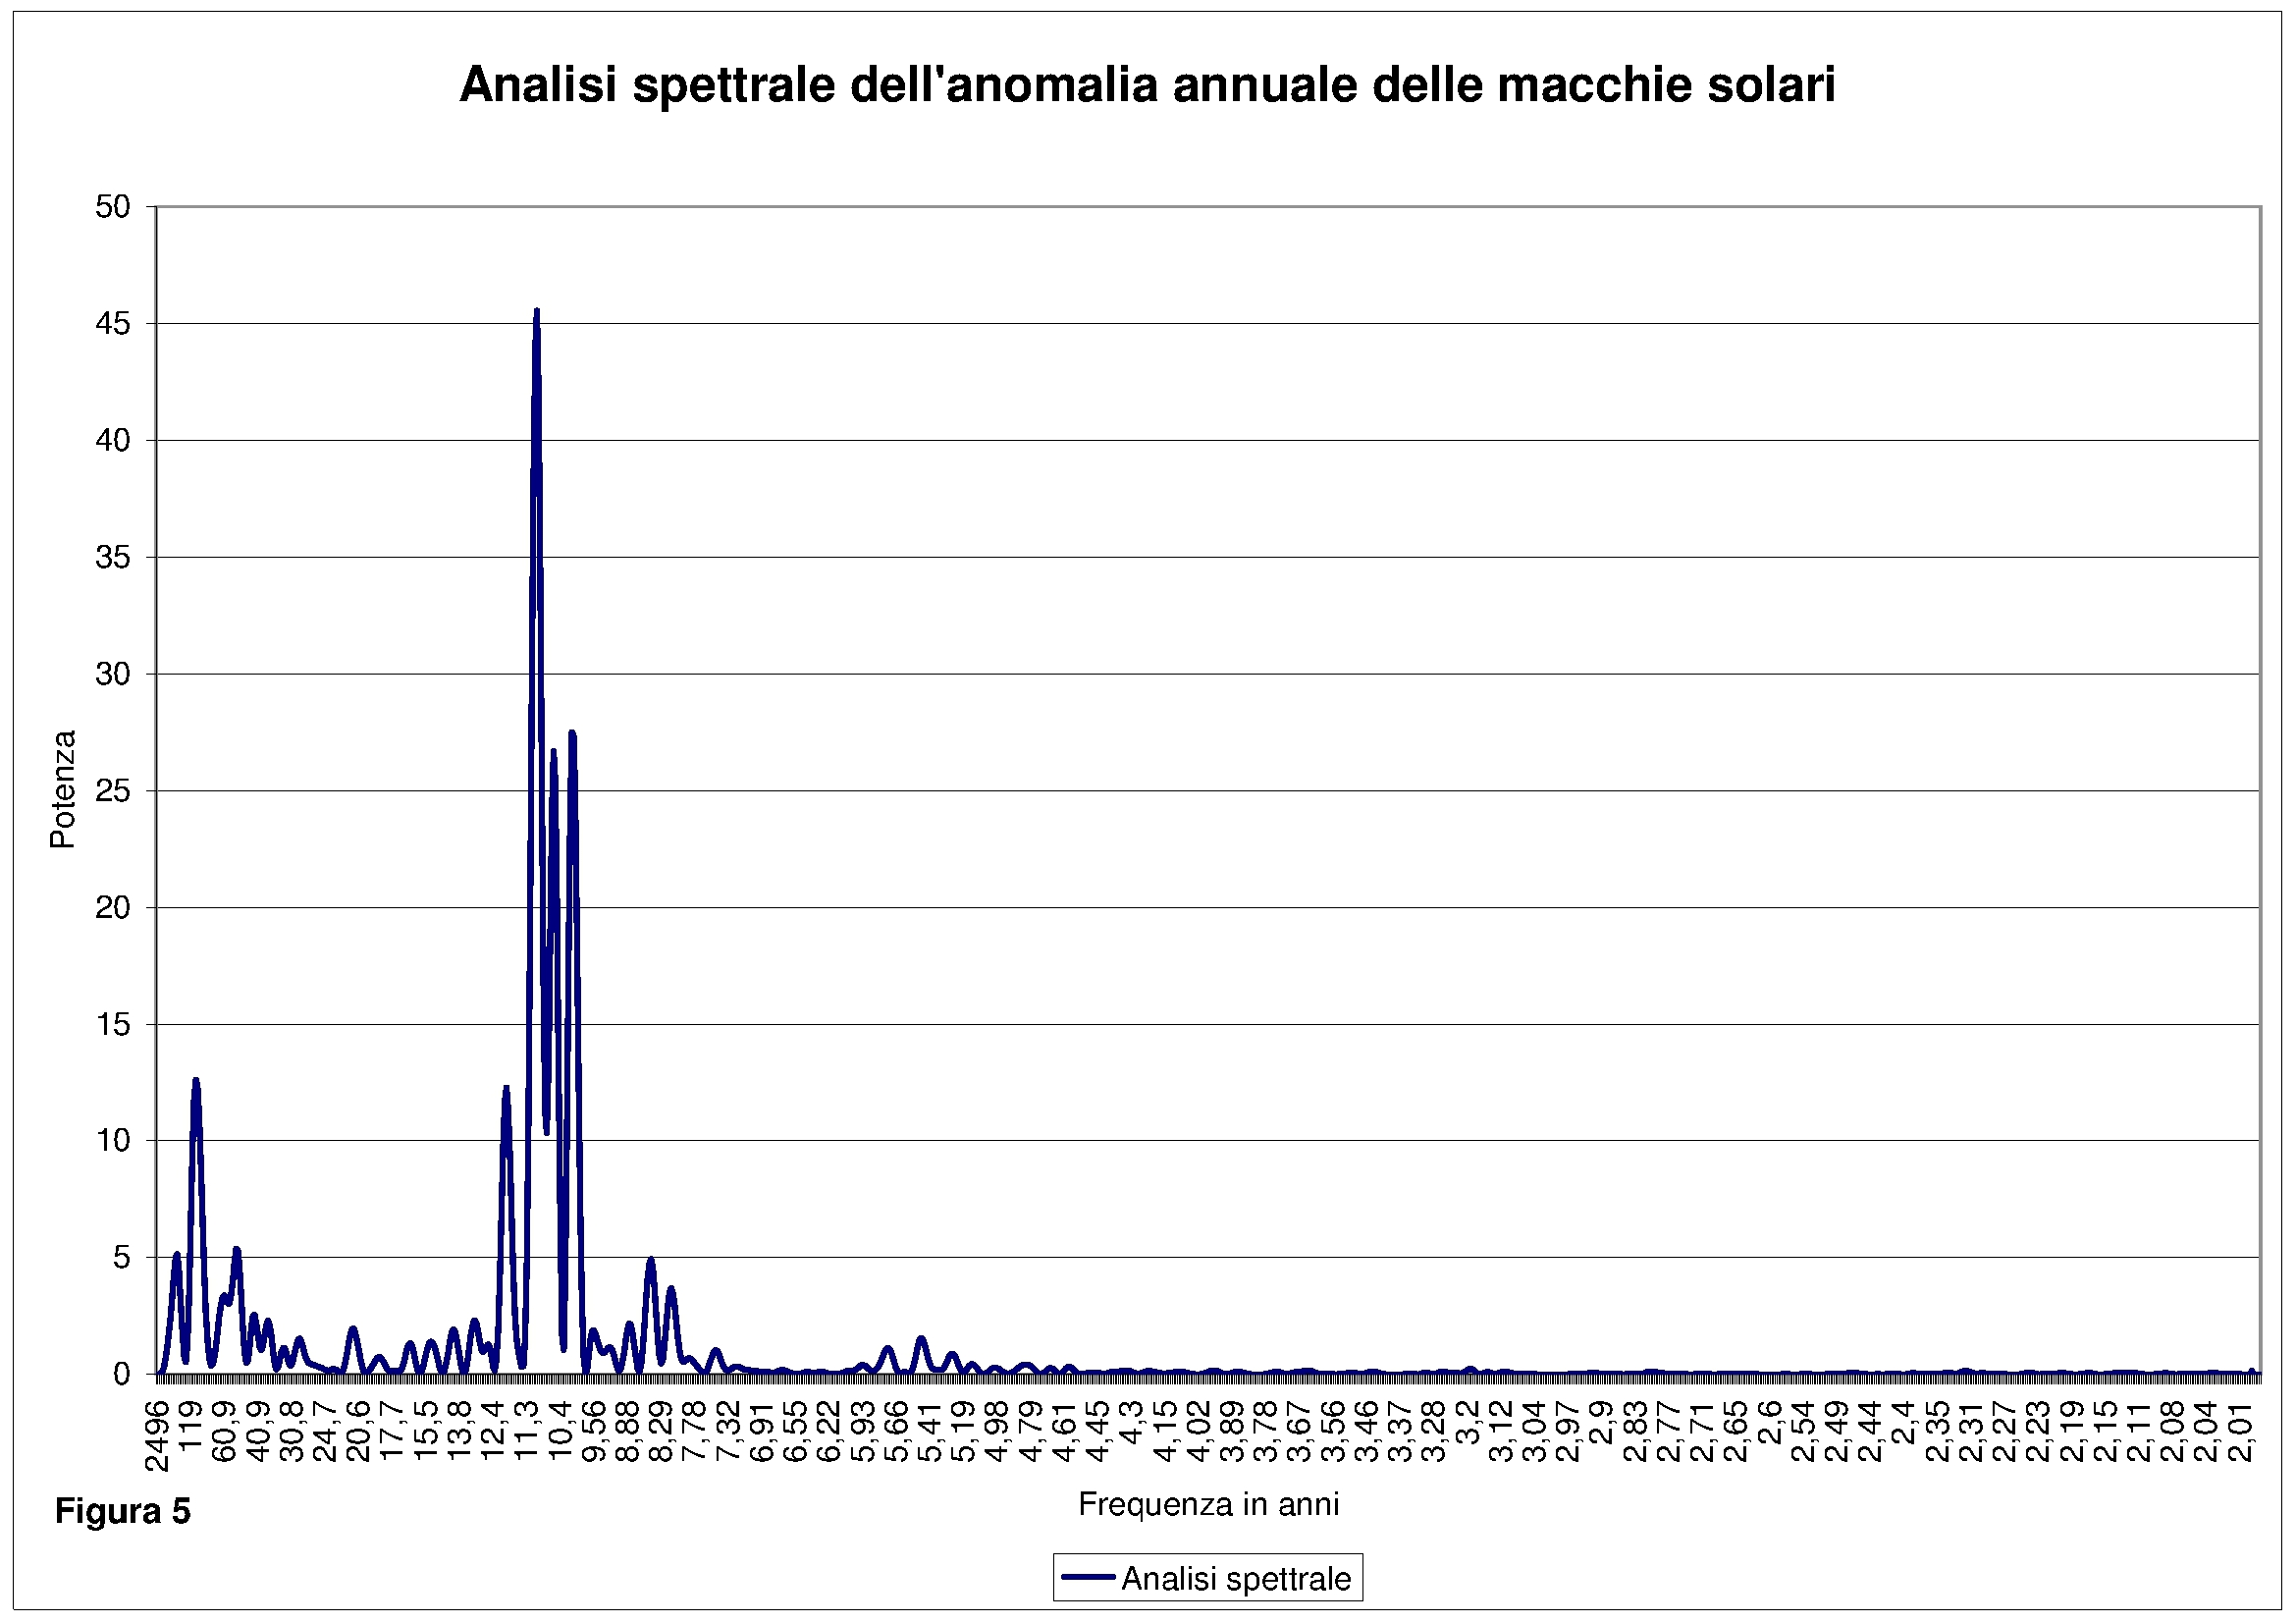 05_analisi_spettrale_ssn